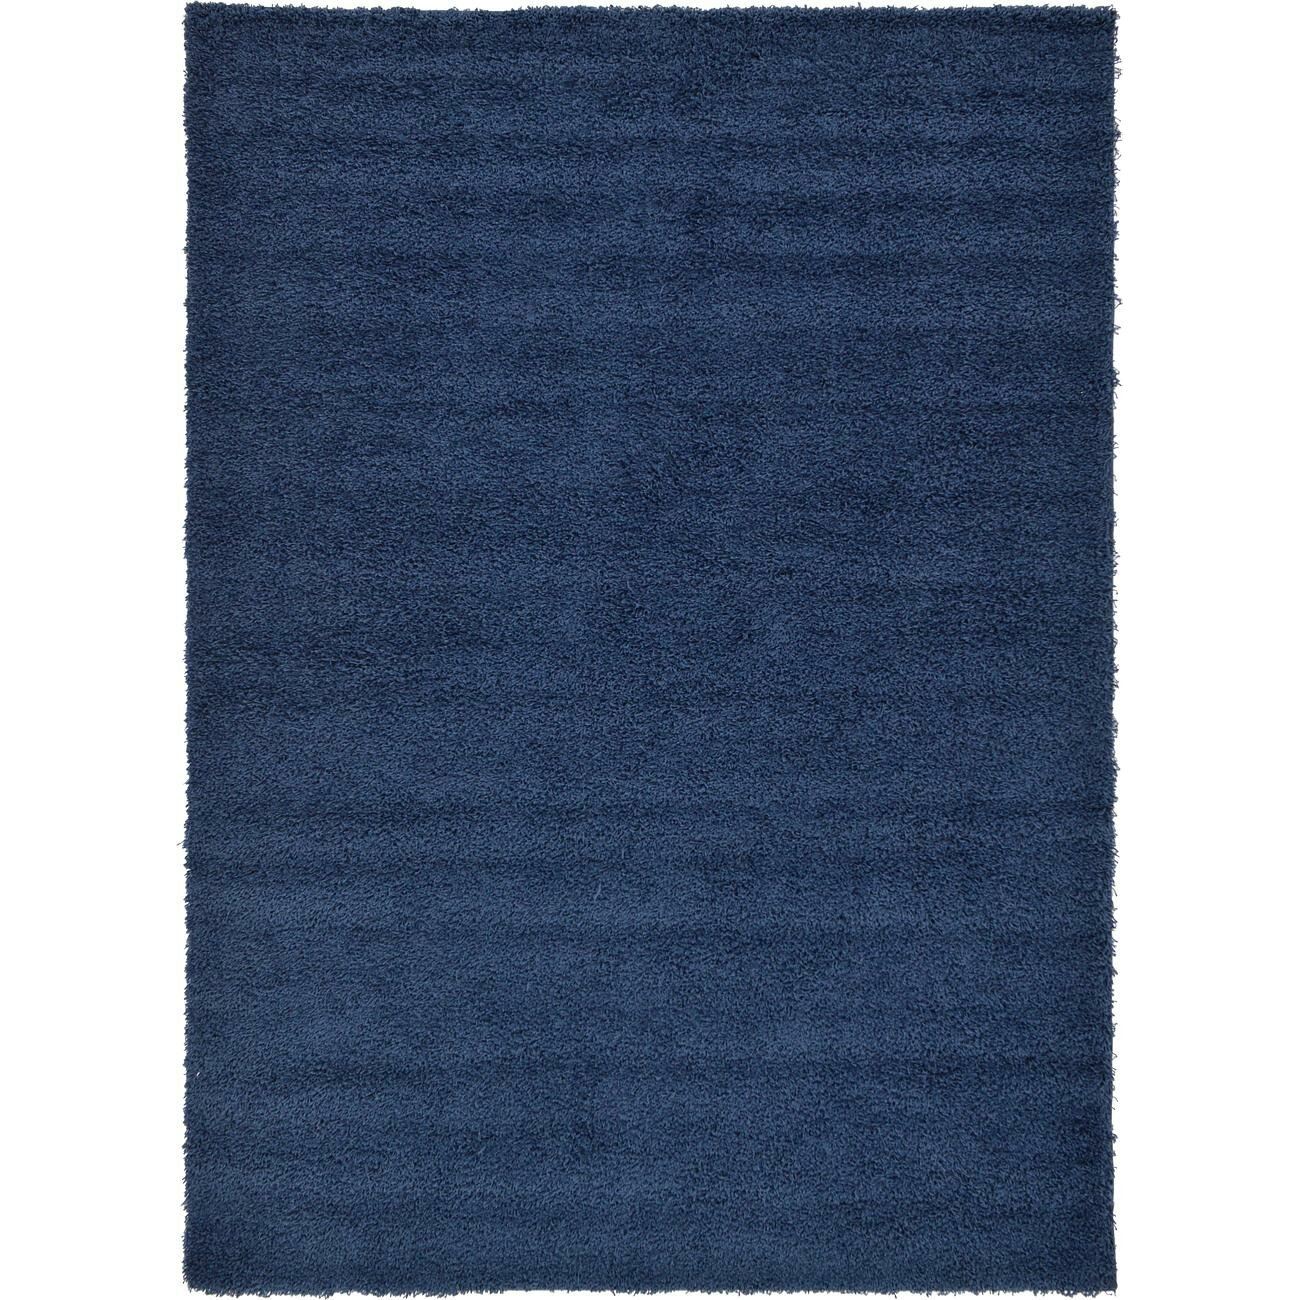 the best 28 images of navy blue area rug